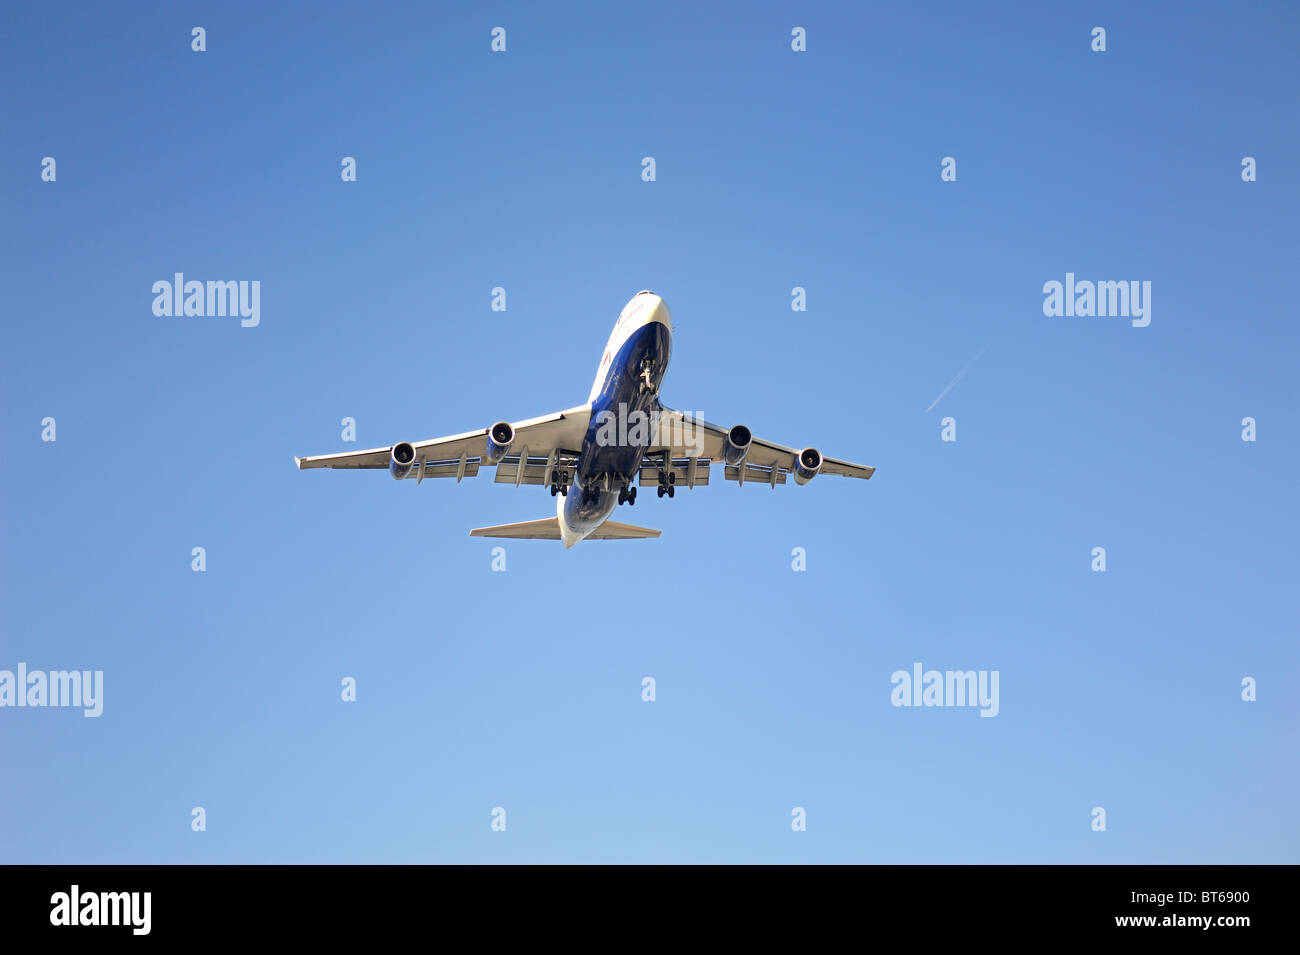 British Airways jumbo jet 747 coming in to land Stock Photo